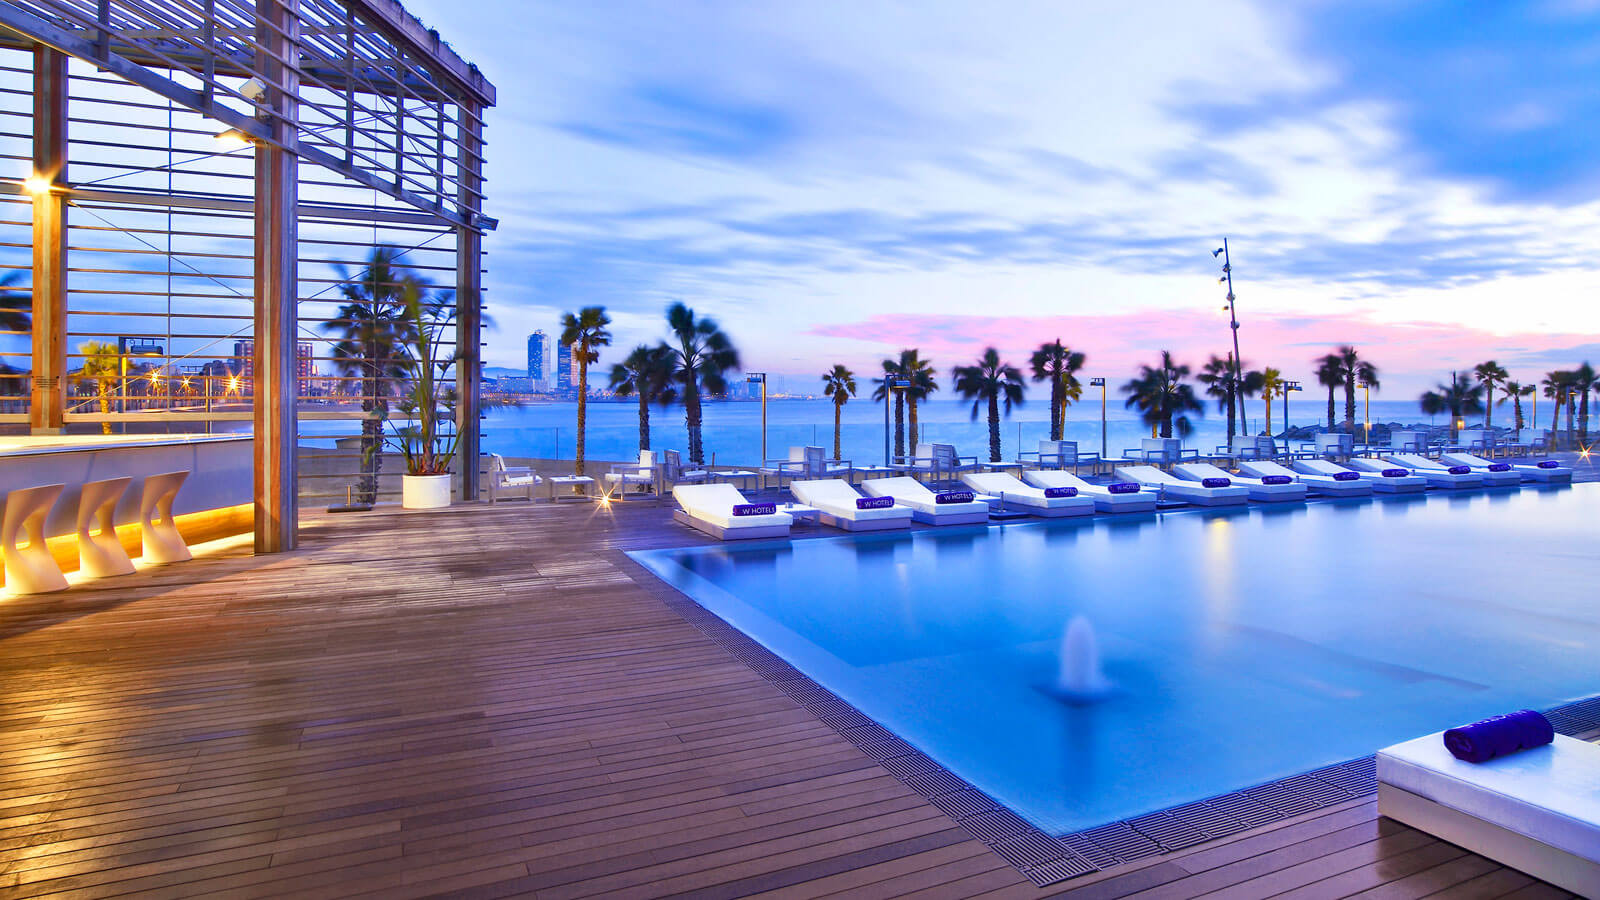 Astounding Outdoor Relaxing E Design Lied Inside W Hotel Barcelona Near Several Clear Colored Beach Chaises Along With Wide Blue Pool